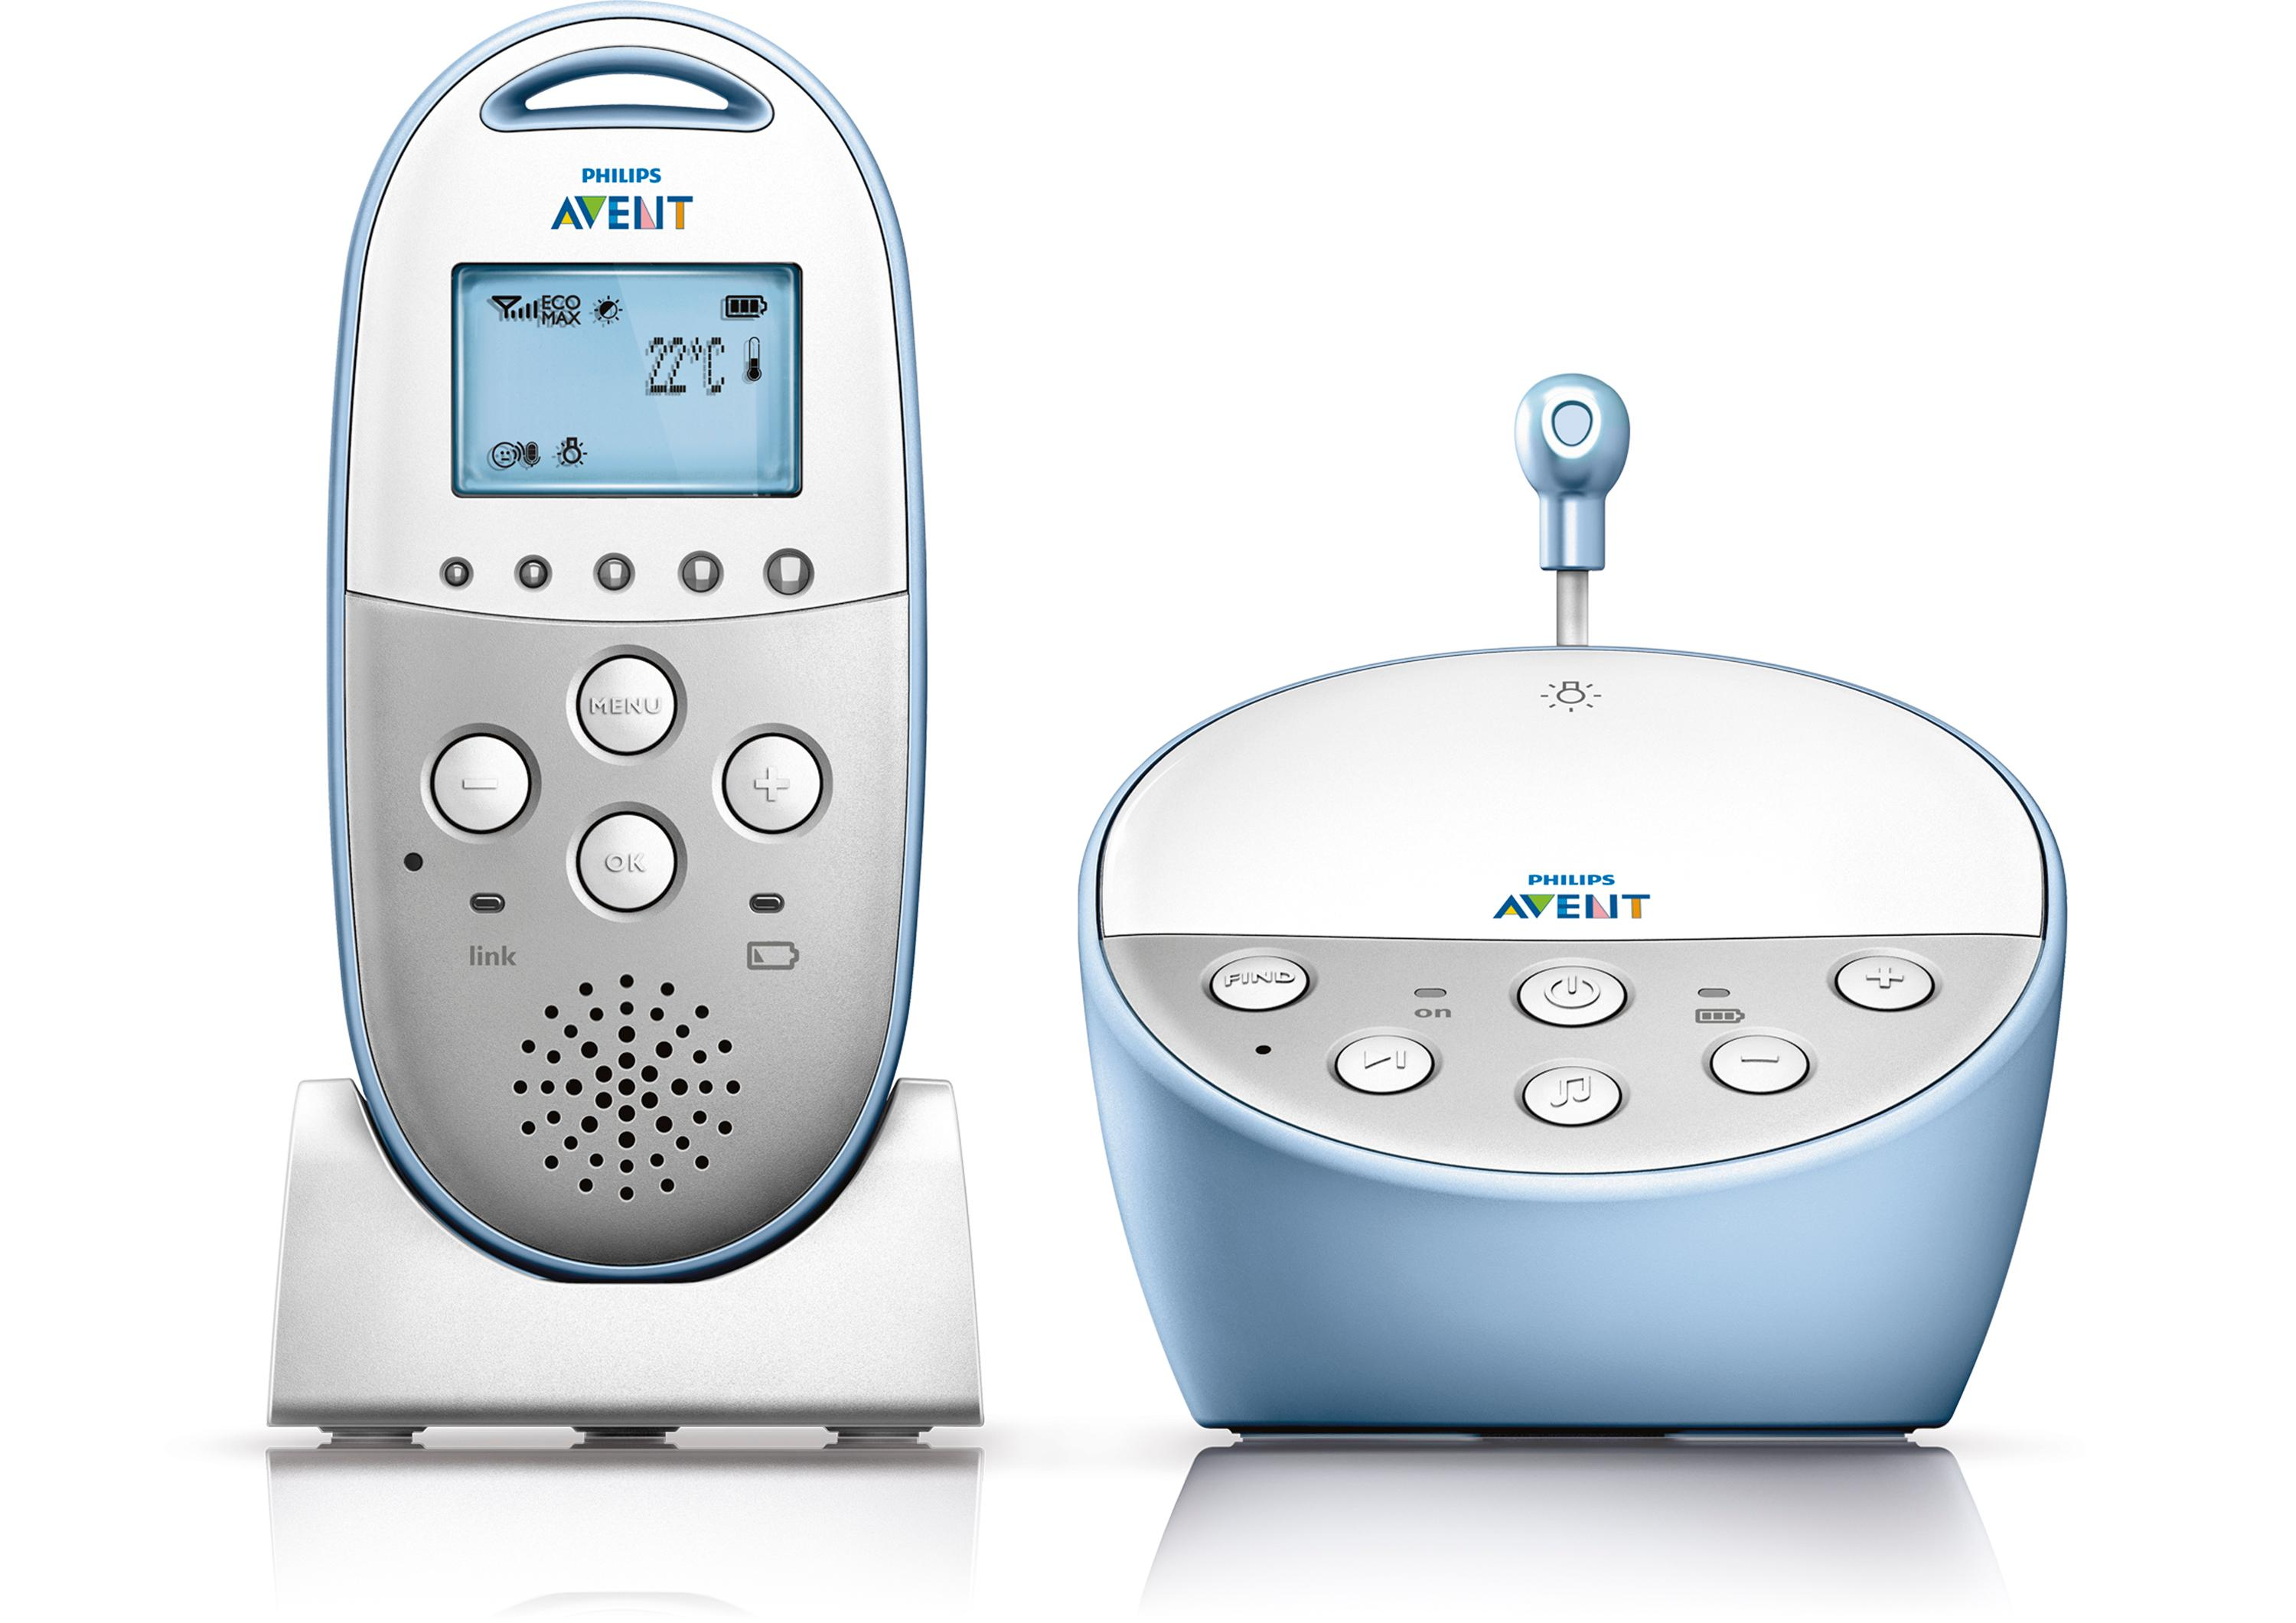 Amazon.com : Philips Avent DECT Baby Monitor with